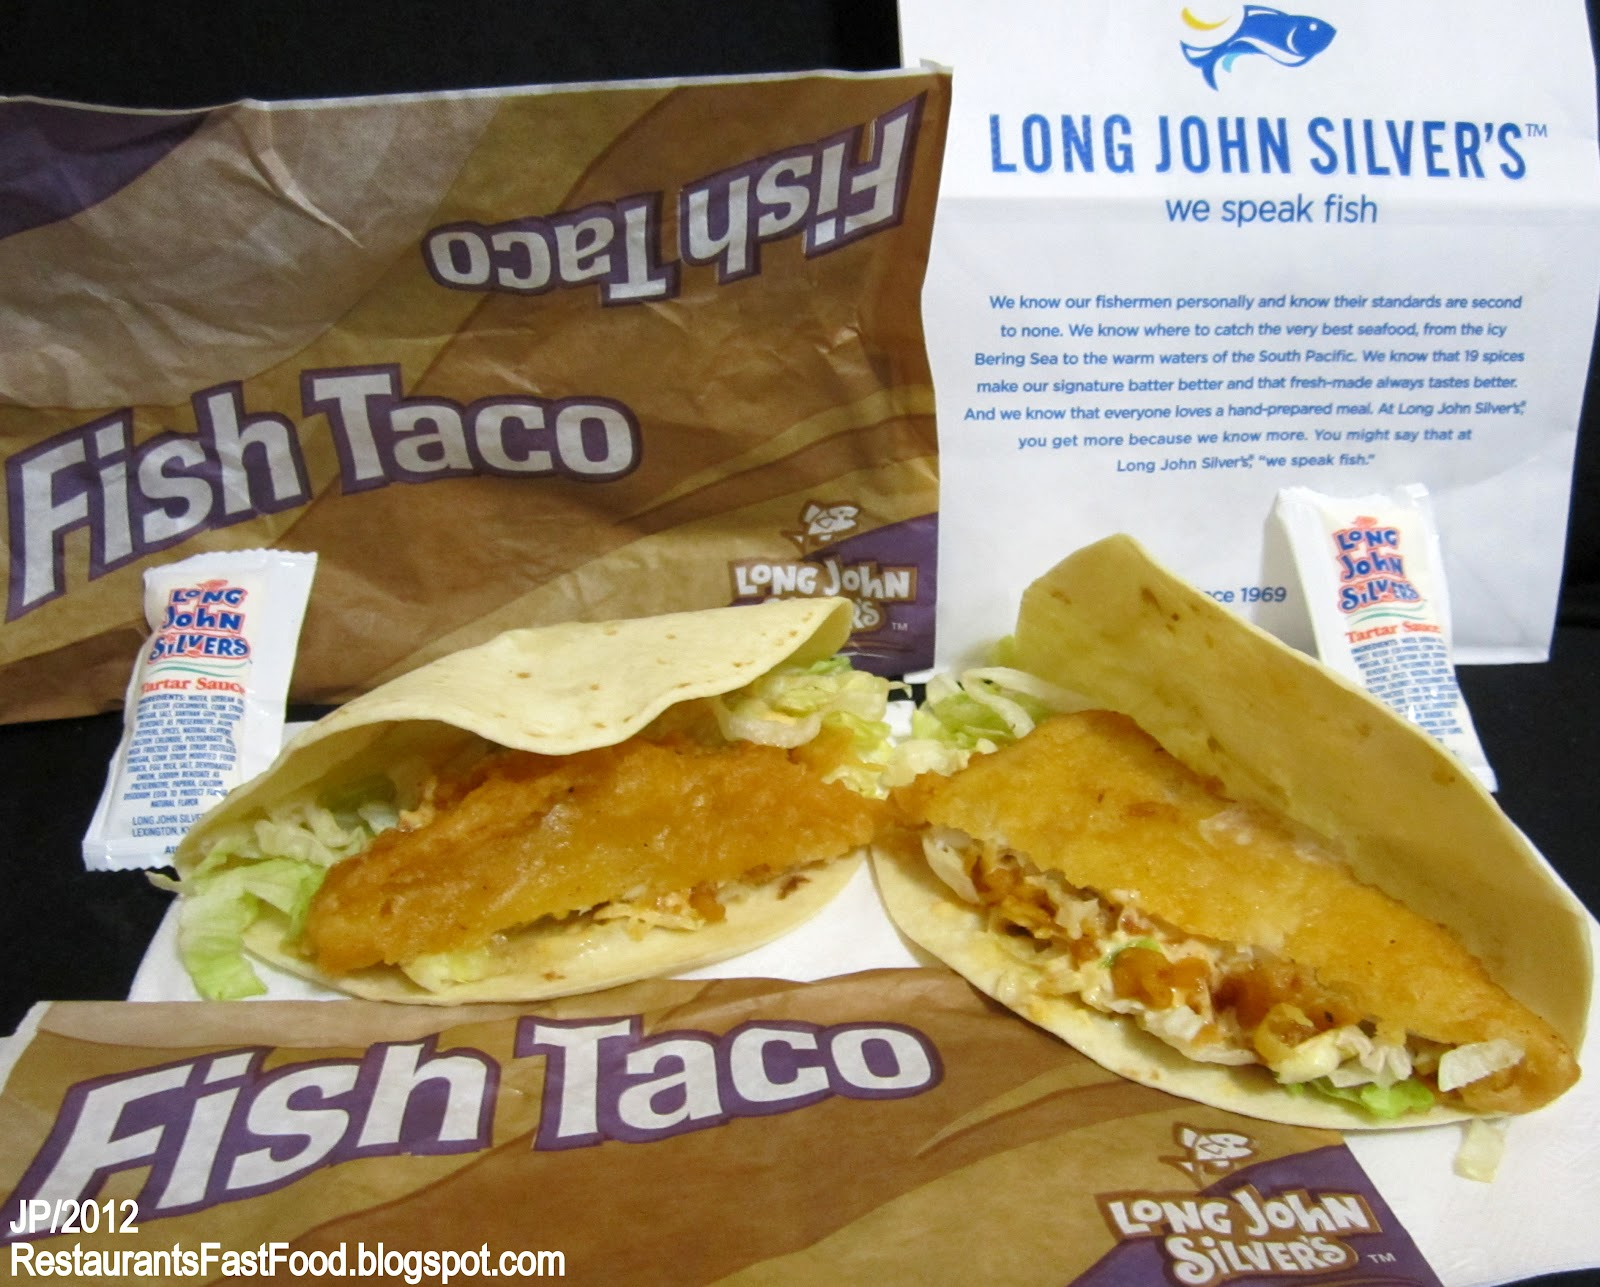 Long John Silvers Salt Lake City Utah Fast Food Fish Seafood Restaurant 36 S State St 301 Ut 84111 Slc